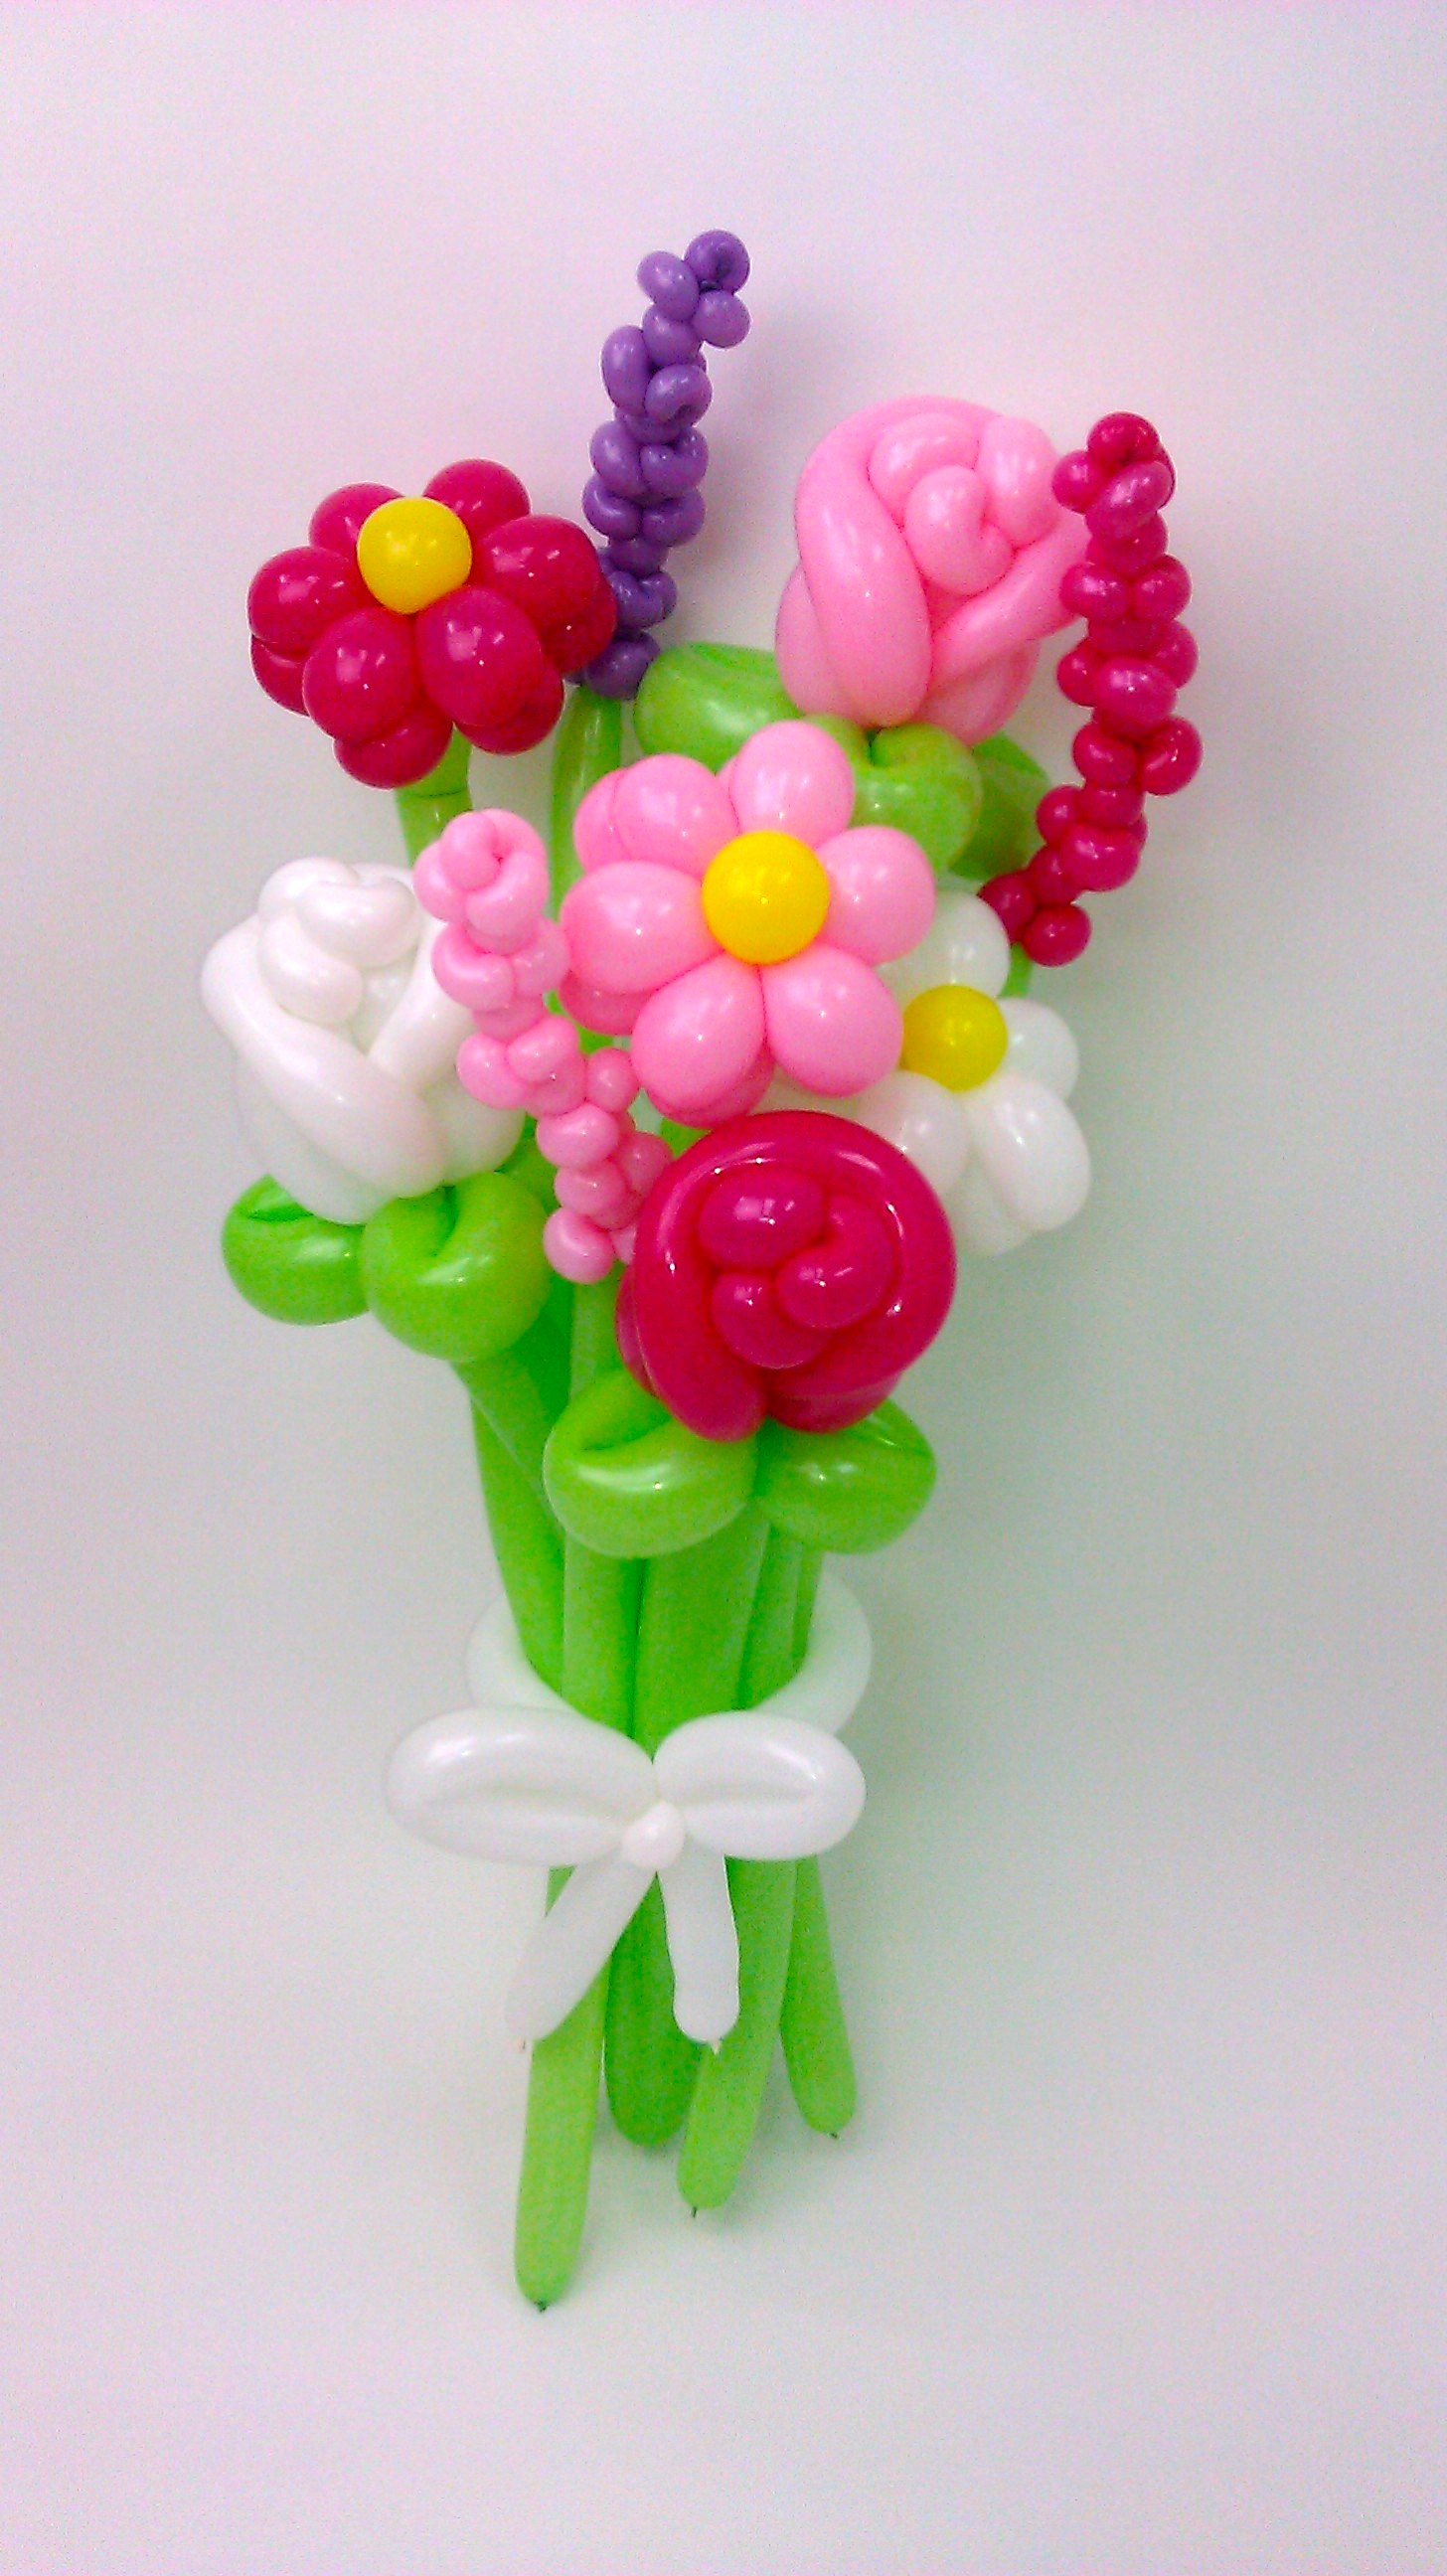 Daisy rose stalk flower balloon bouquet